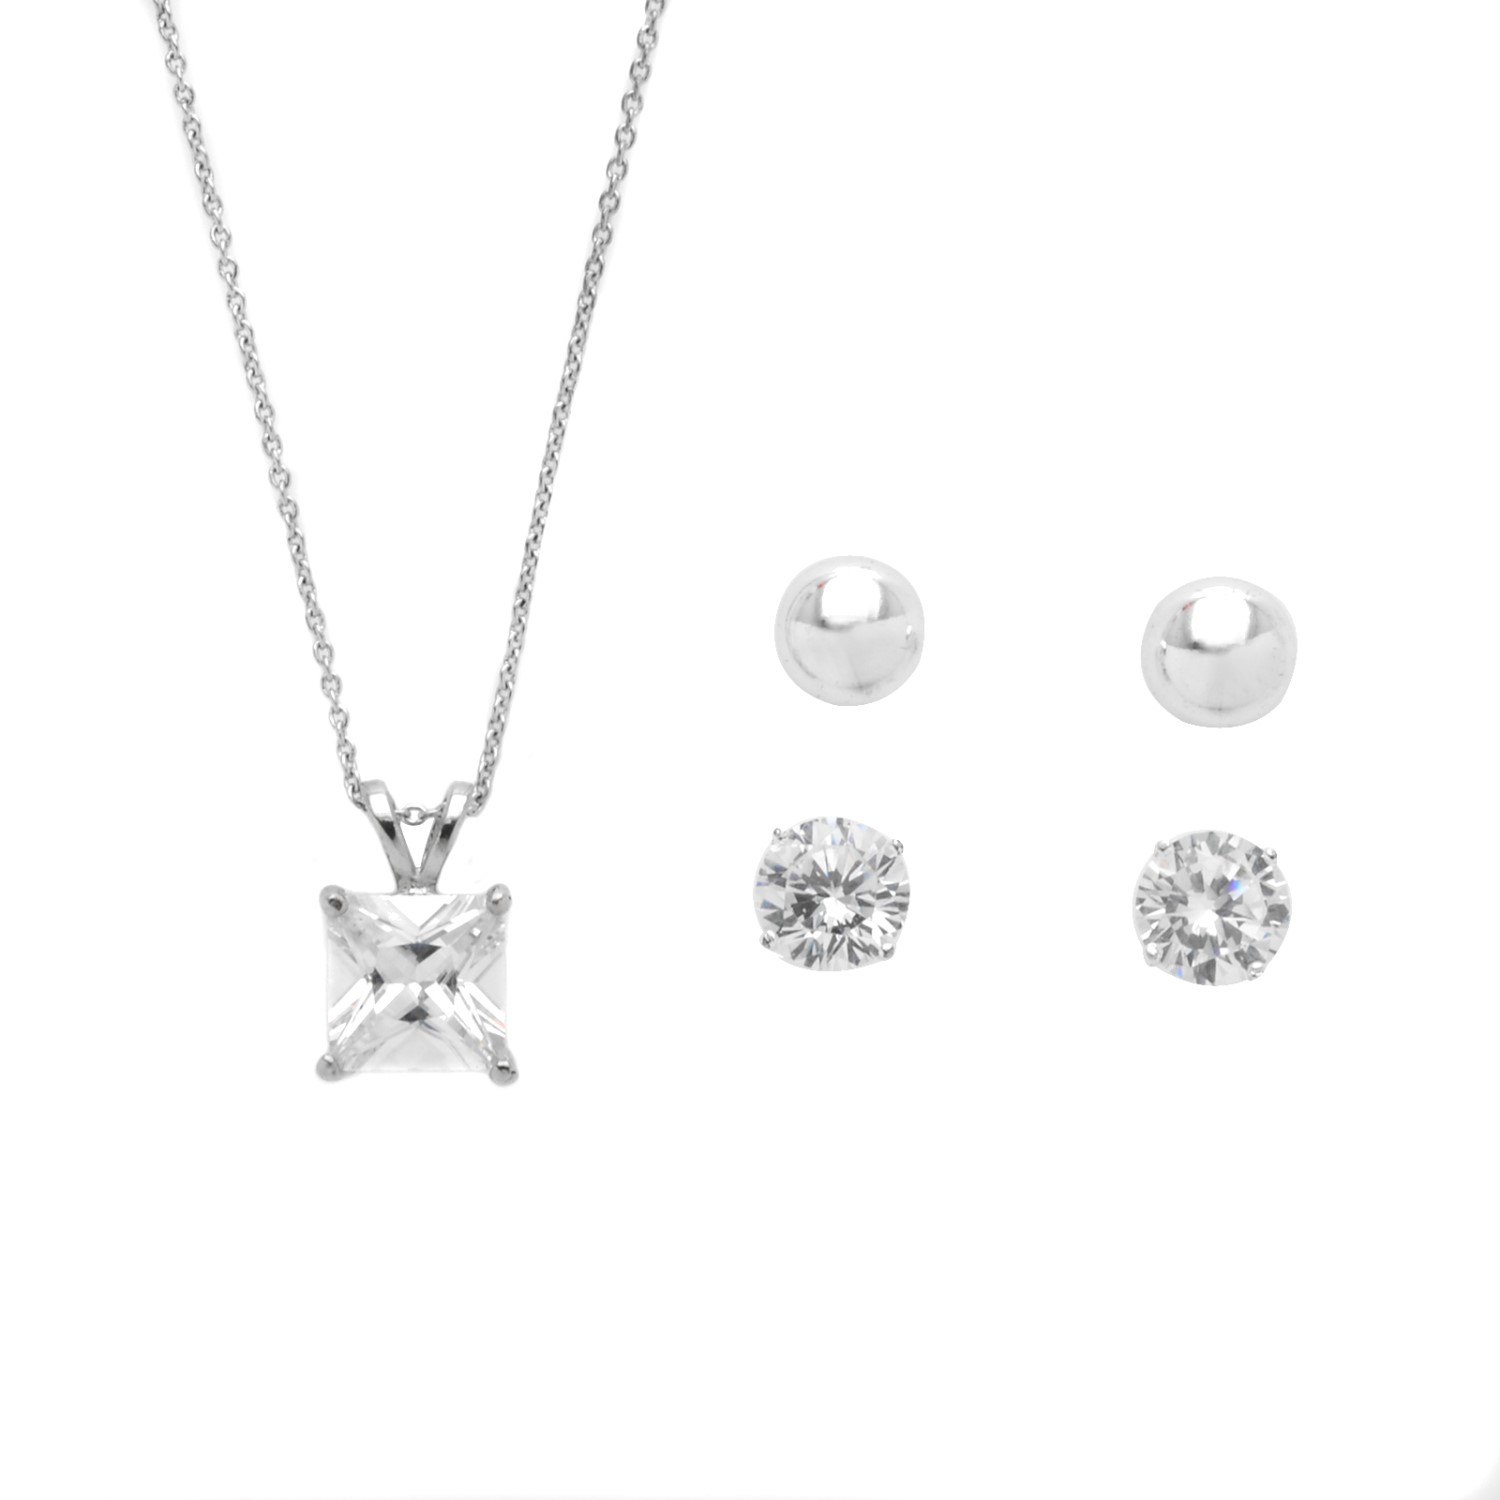 Set Cz Necklace Earring